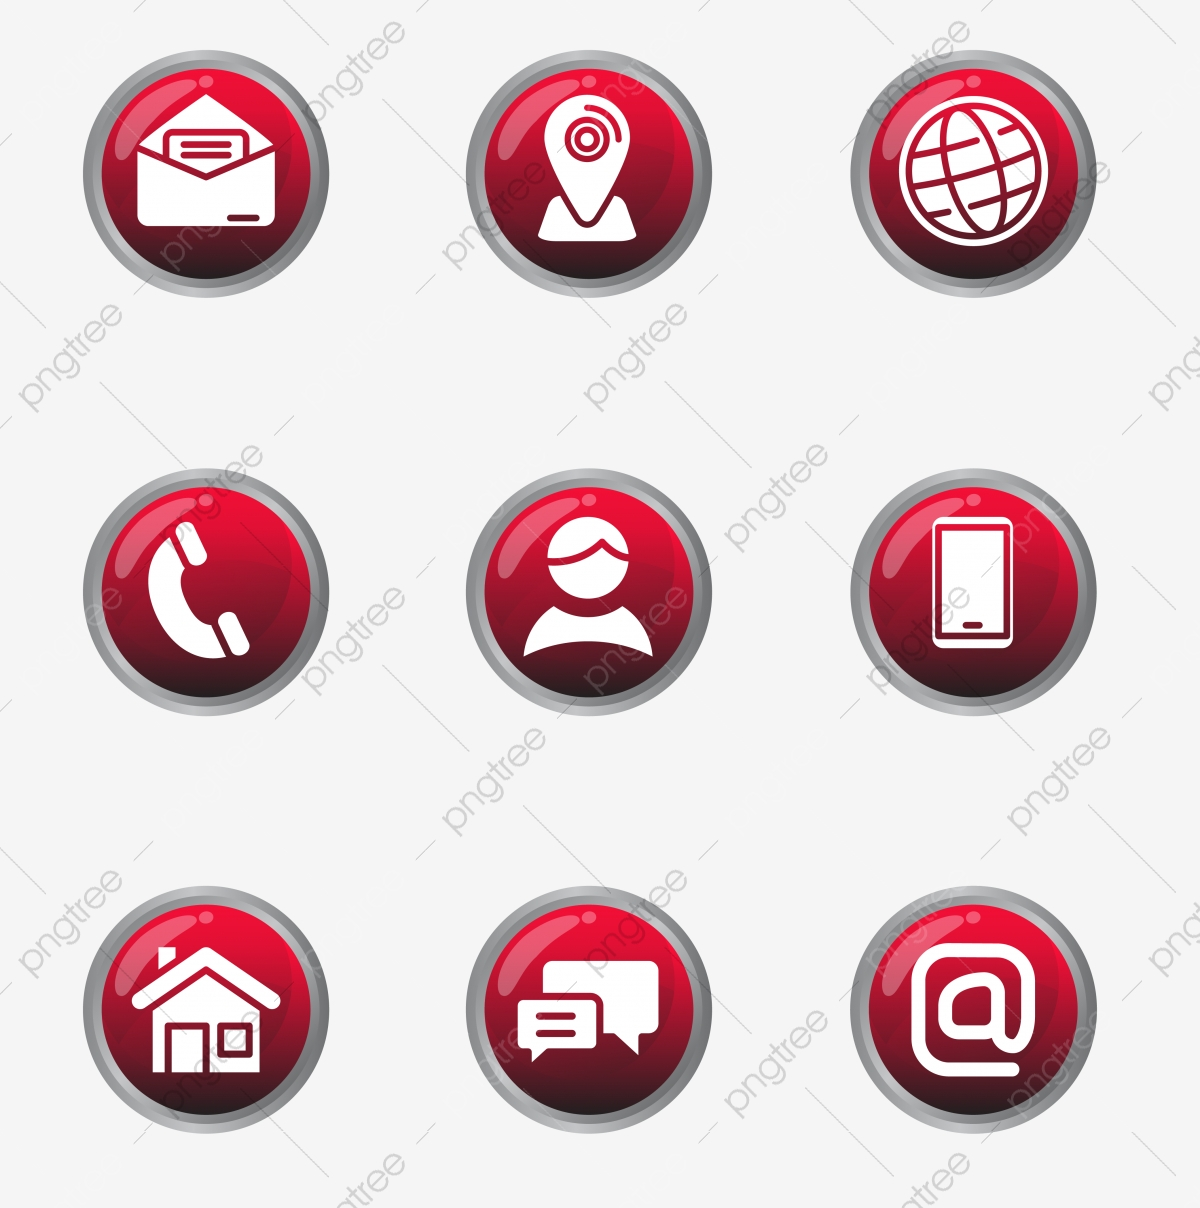 Contact Icon Png Contact Icon Png Transparent Free For Download On Webstockreview 2020